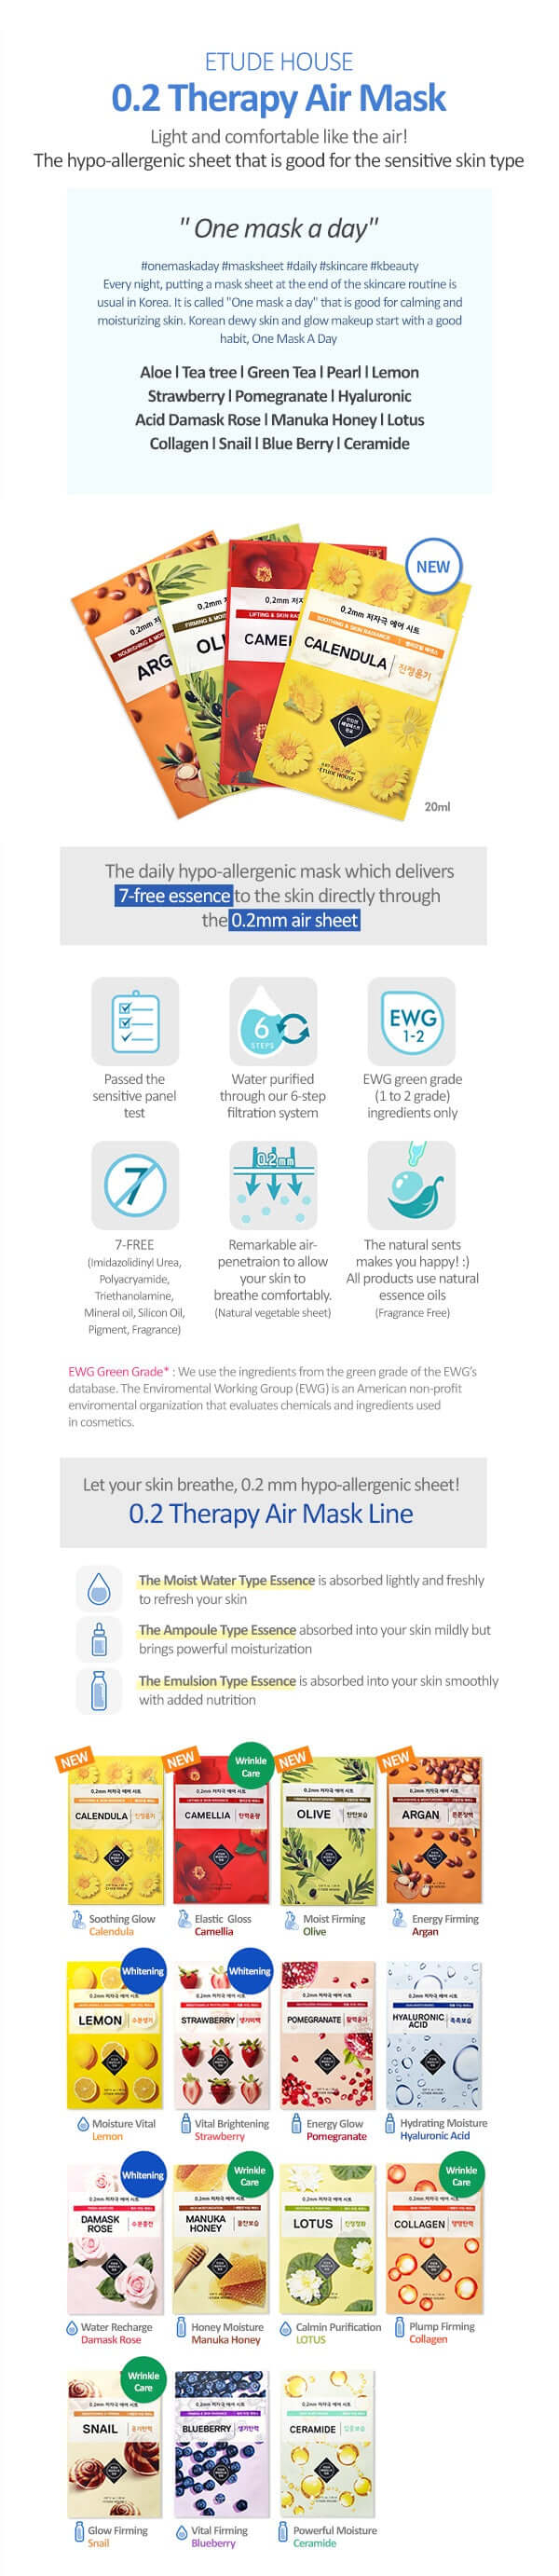 0.2 Therapy Air Mask